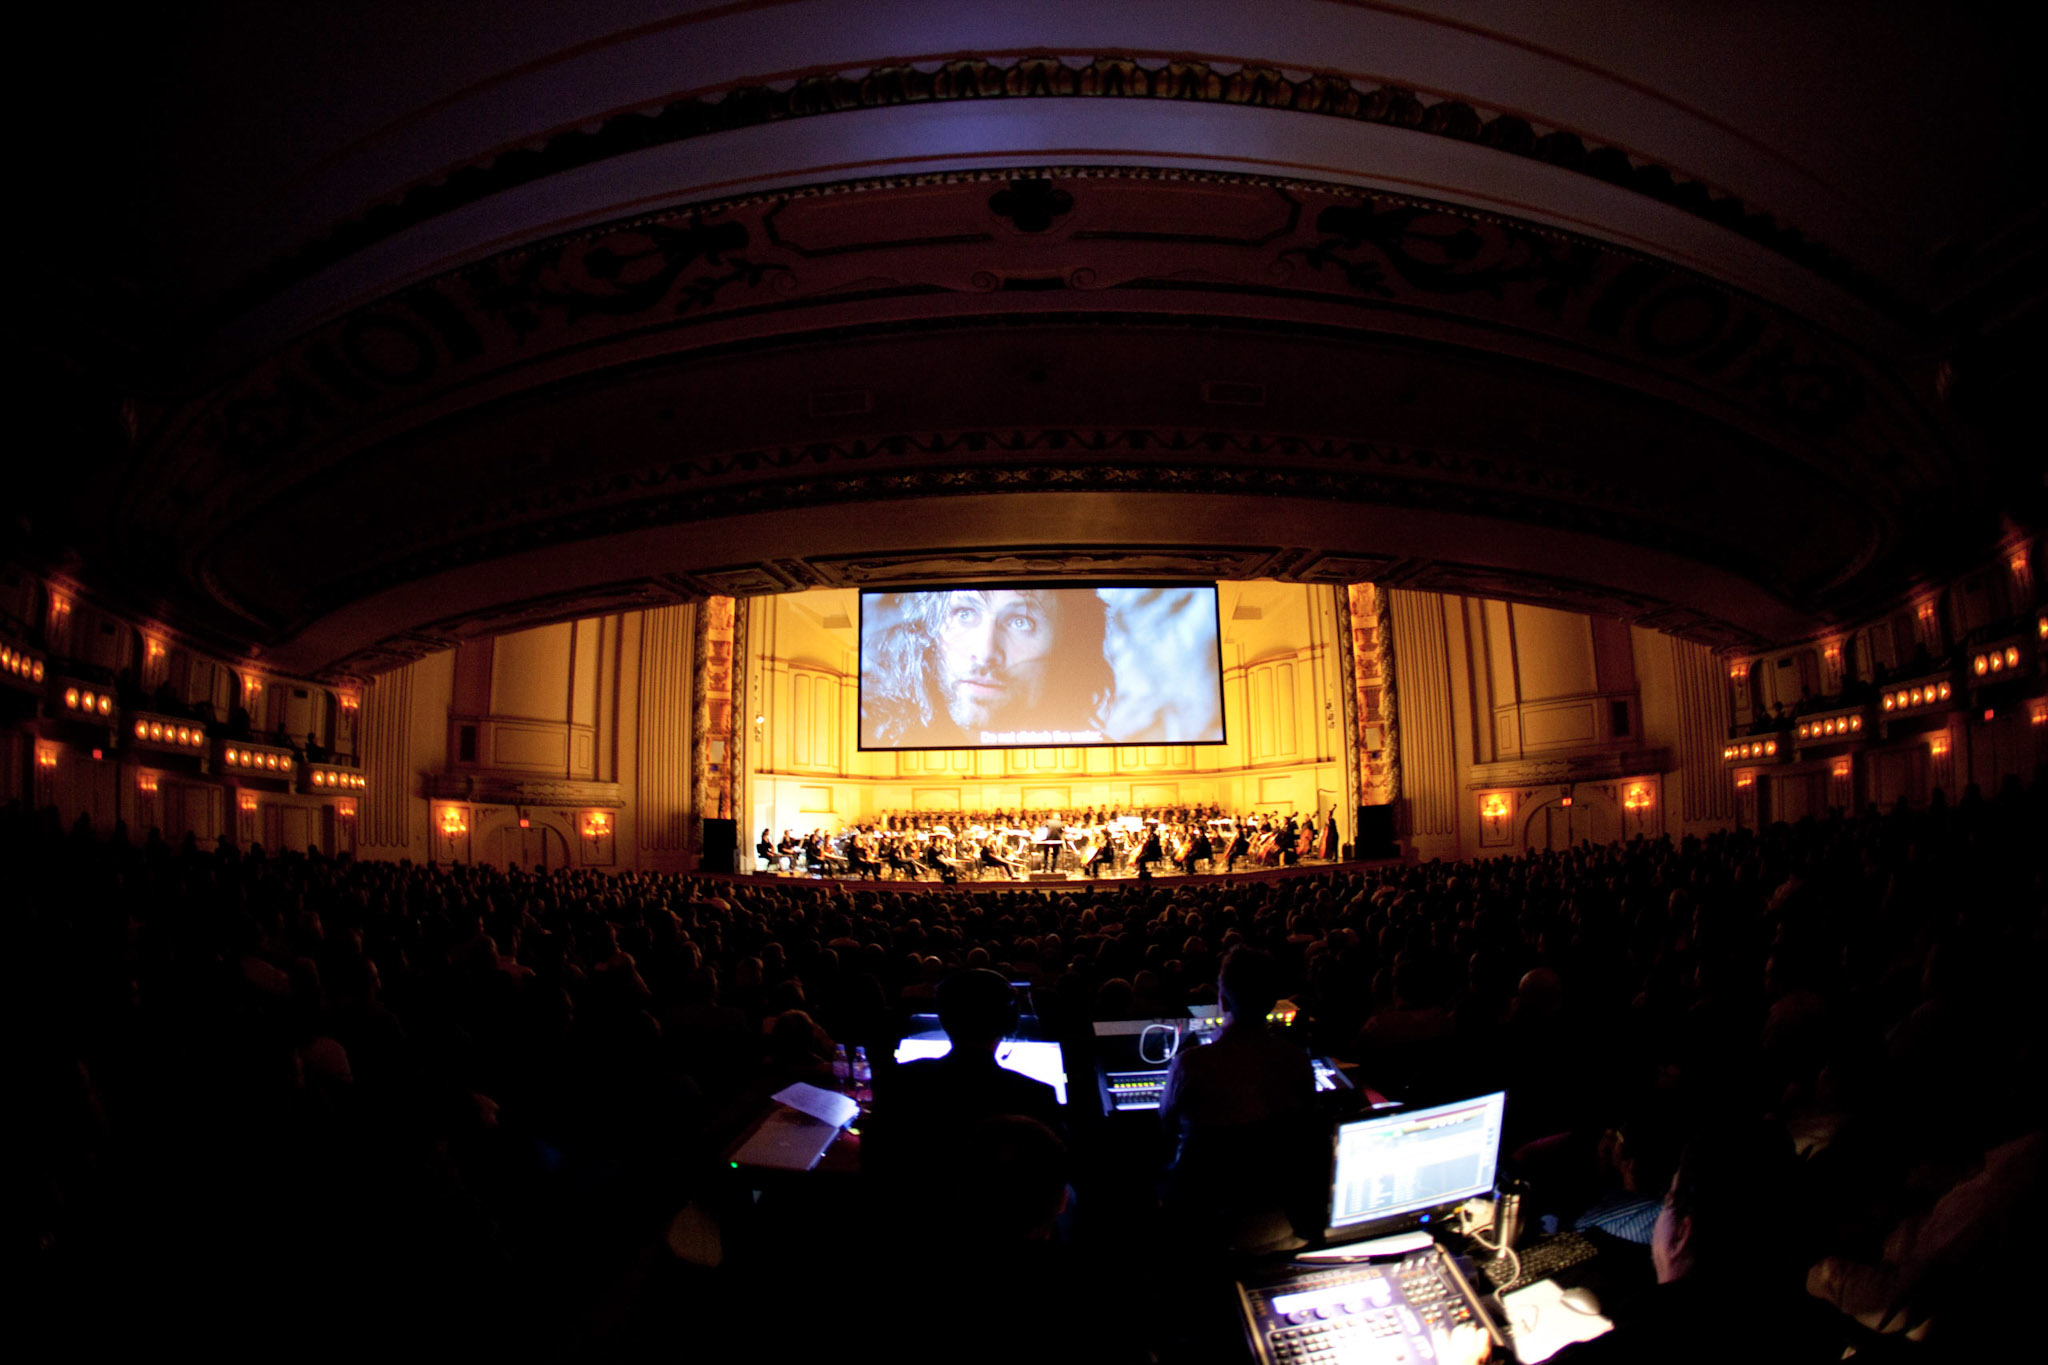 Stagehands at the mix position during the SLSO's performance of The Lord of the Rings